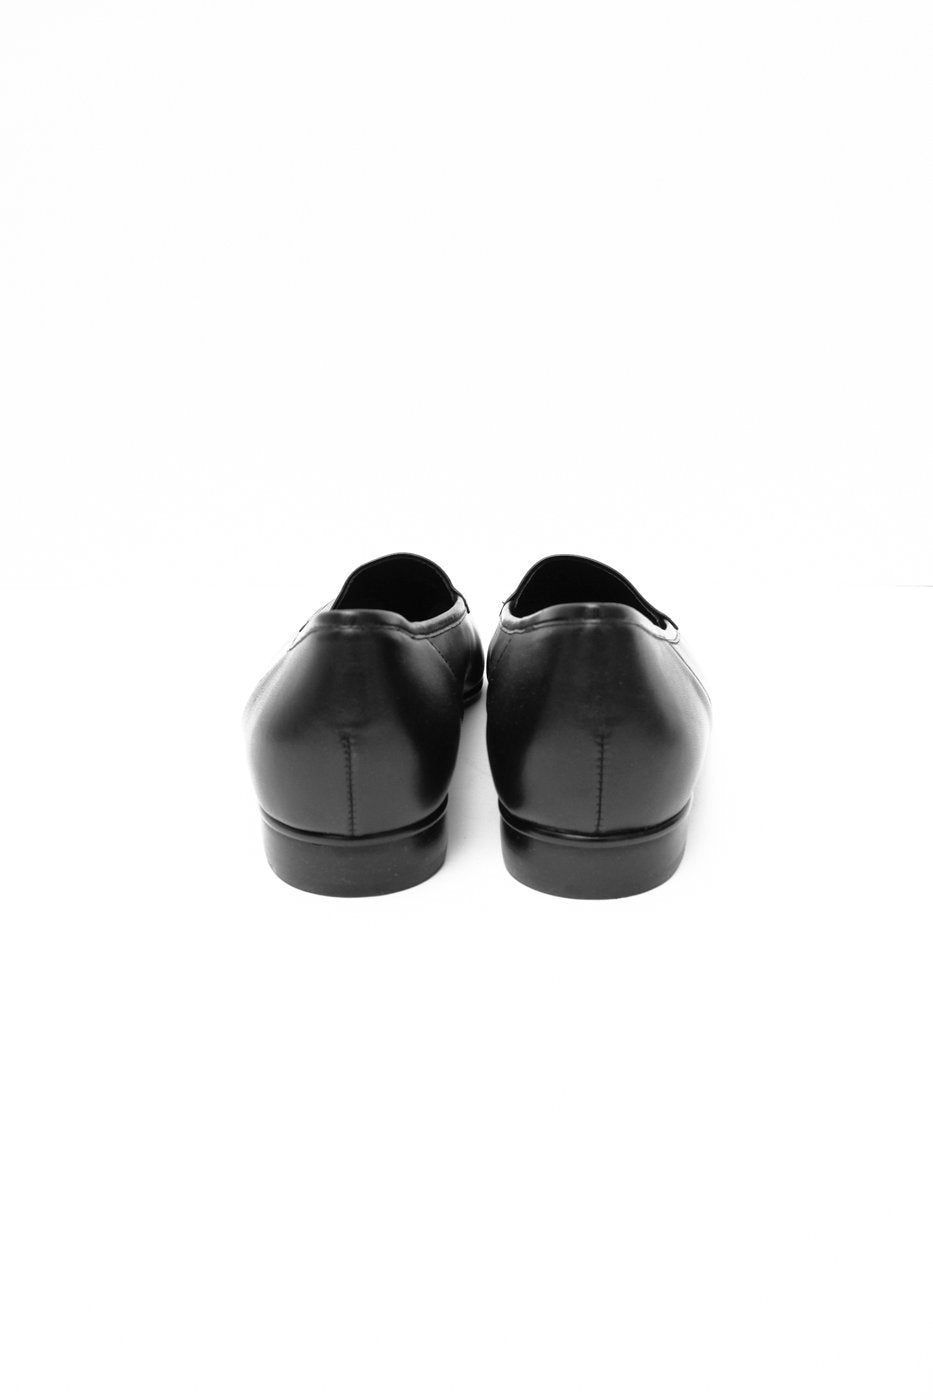 0476_PURISTIC LEATHER SLIPPER 40 / 7